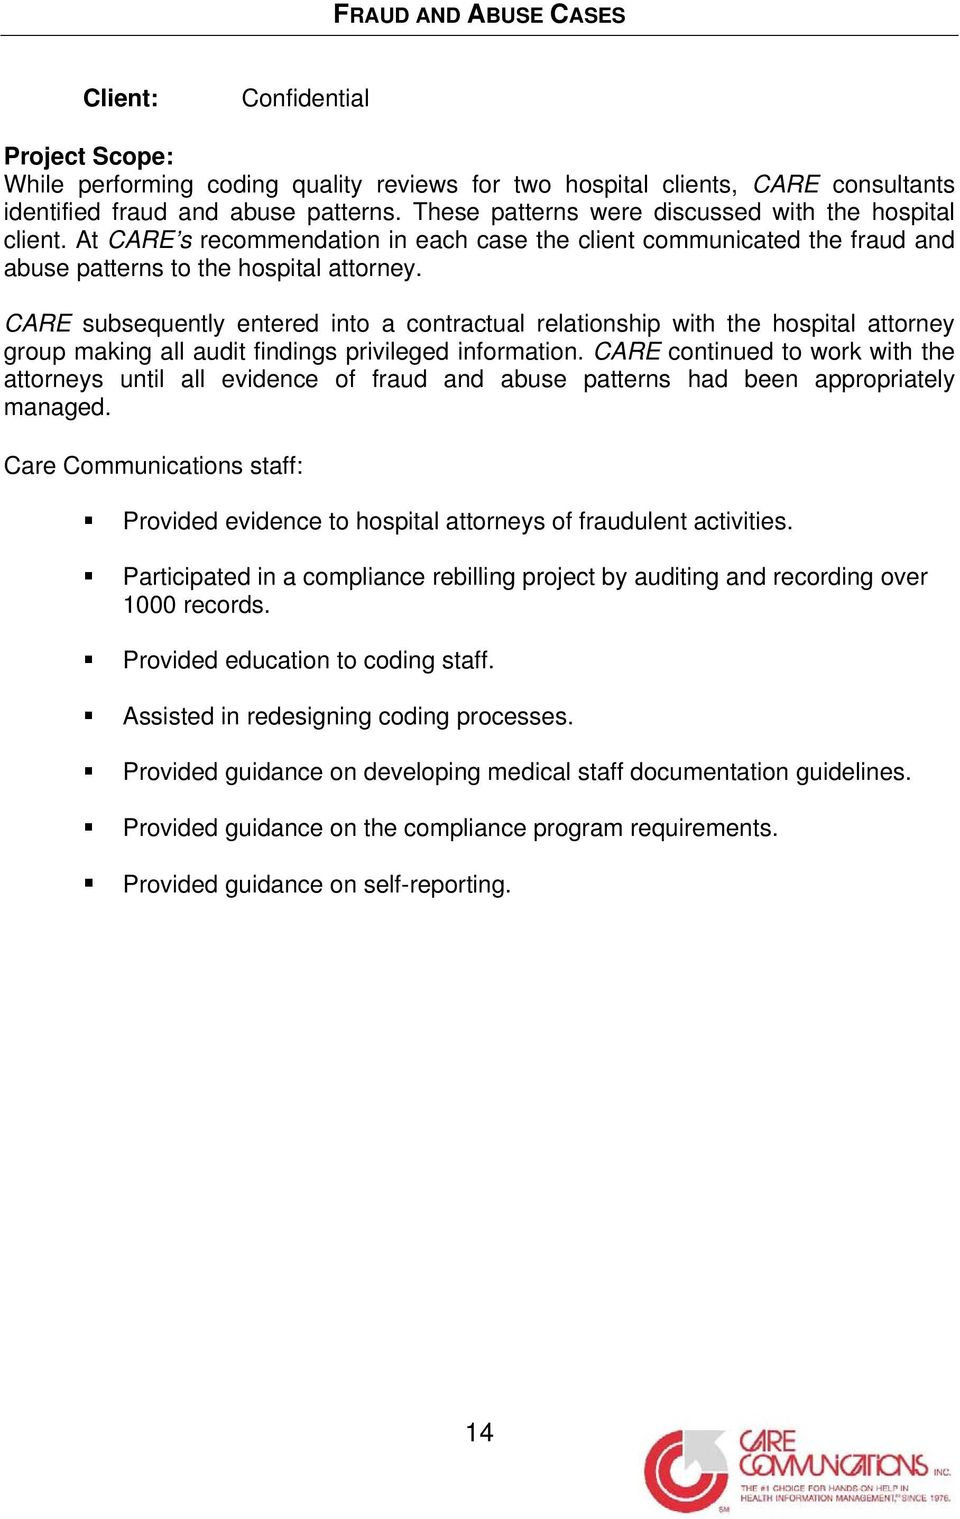 CARE subsequently entered into a contractual relationship with the hospital attorney group making all audit findings privileged information.